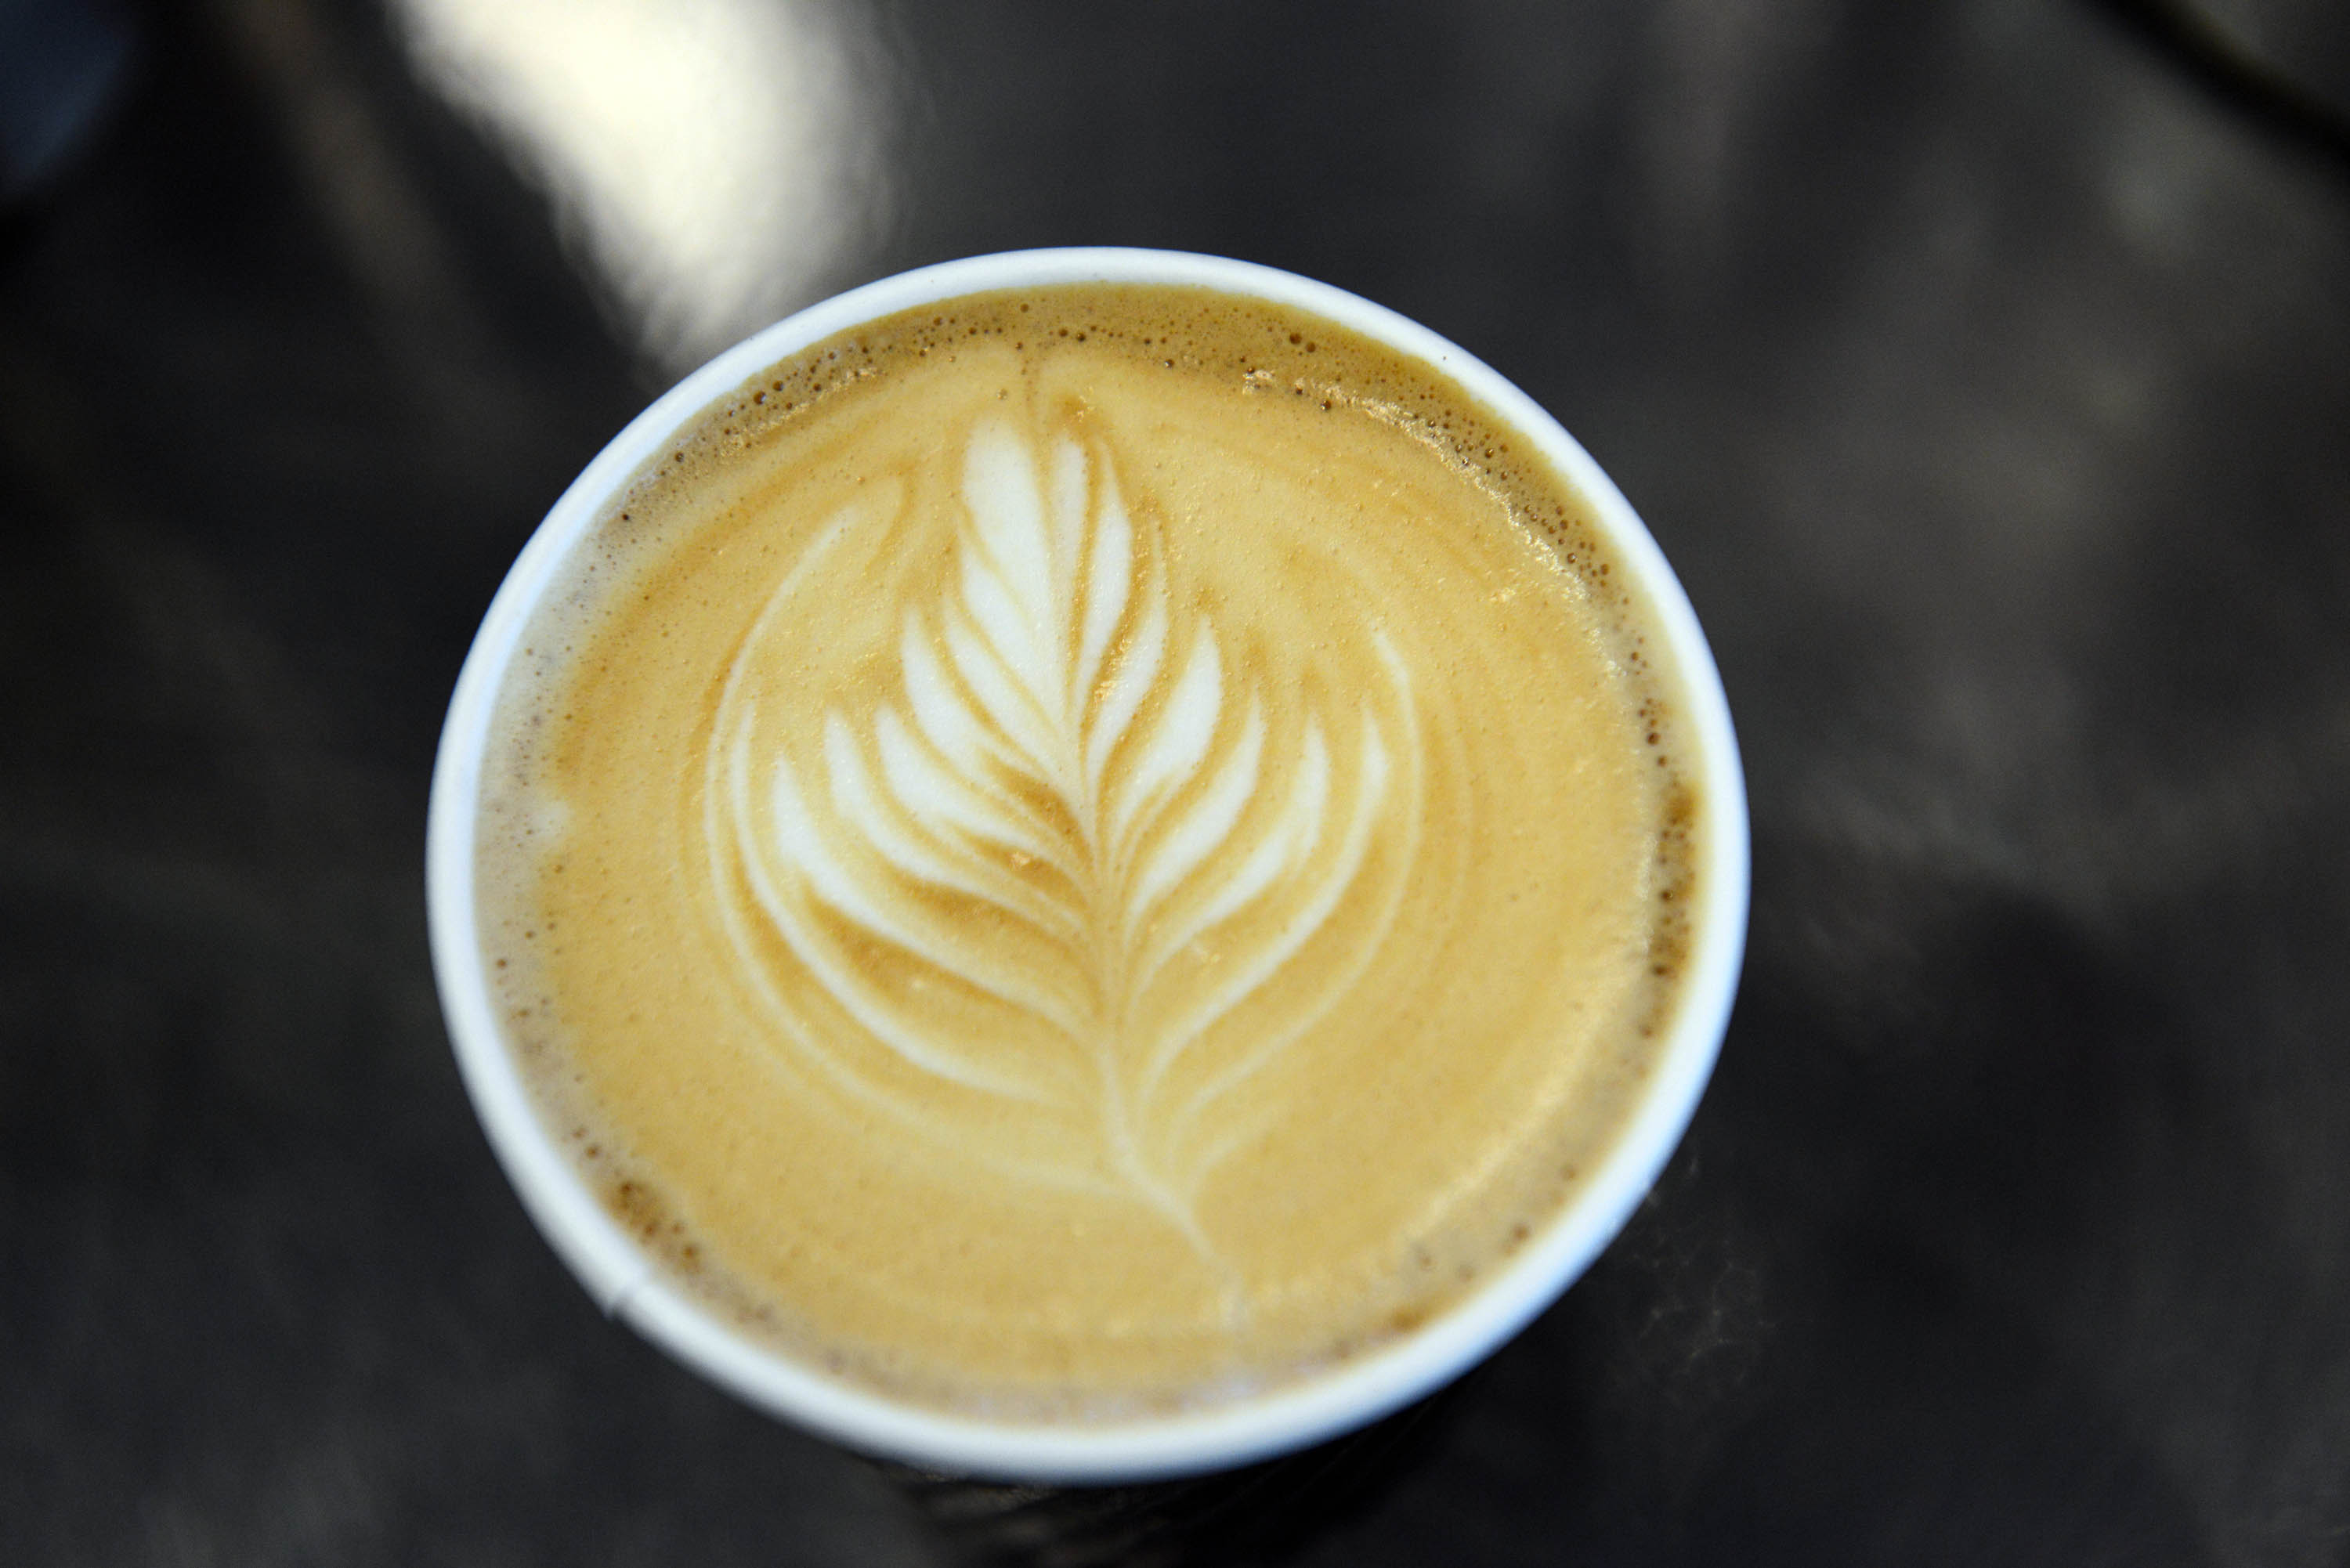 Break out of the grind: Try 17 local coffee shops with new passport program